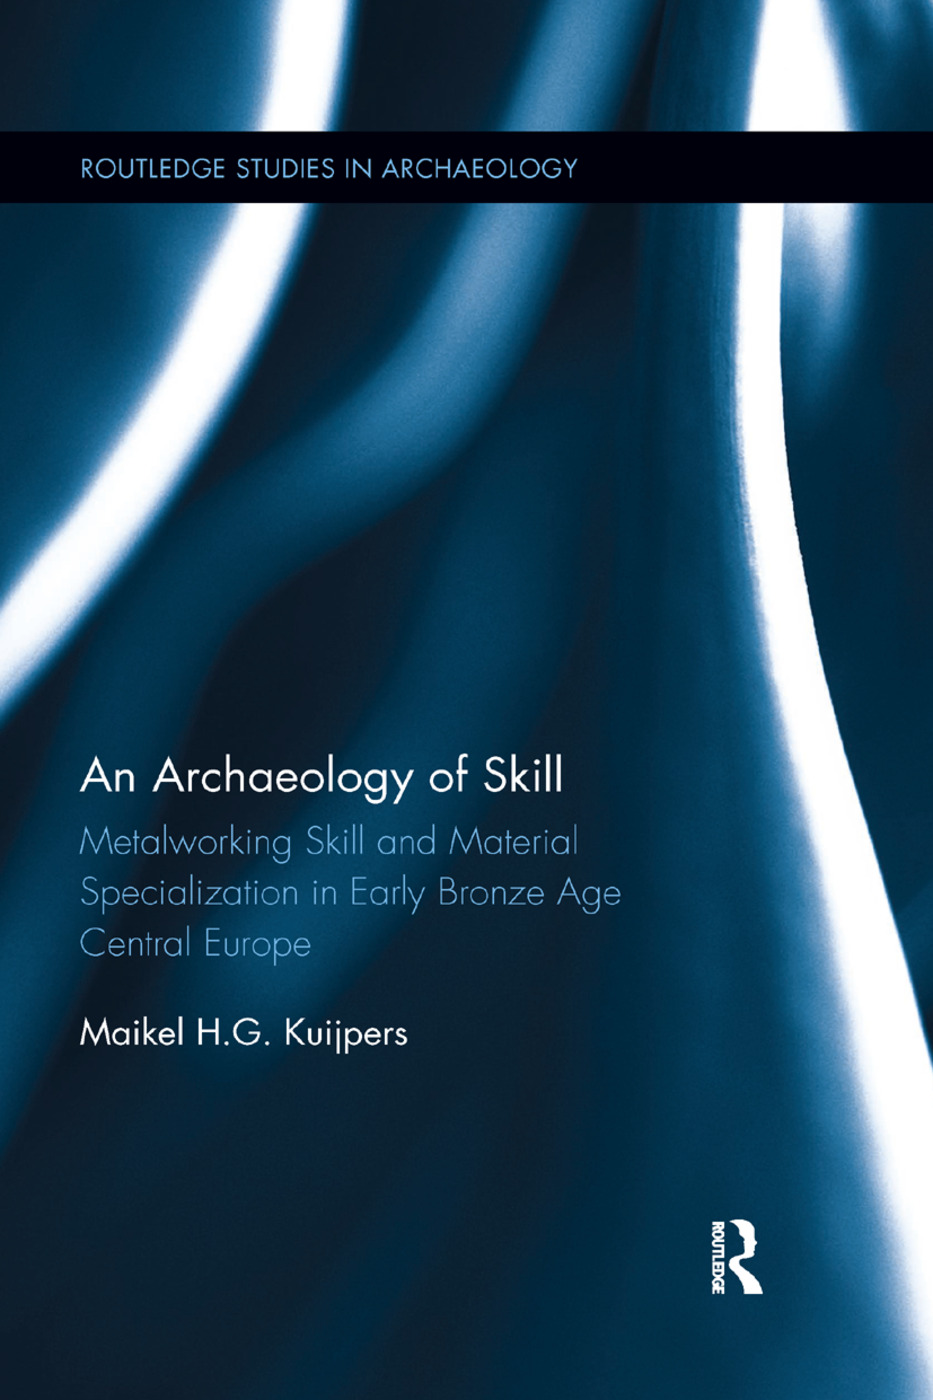 An Archaeology of Skill